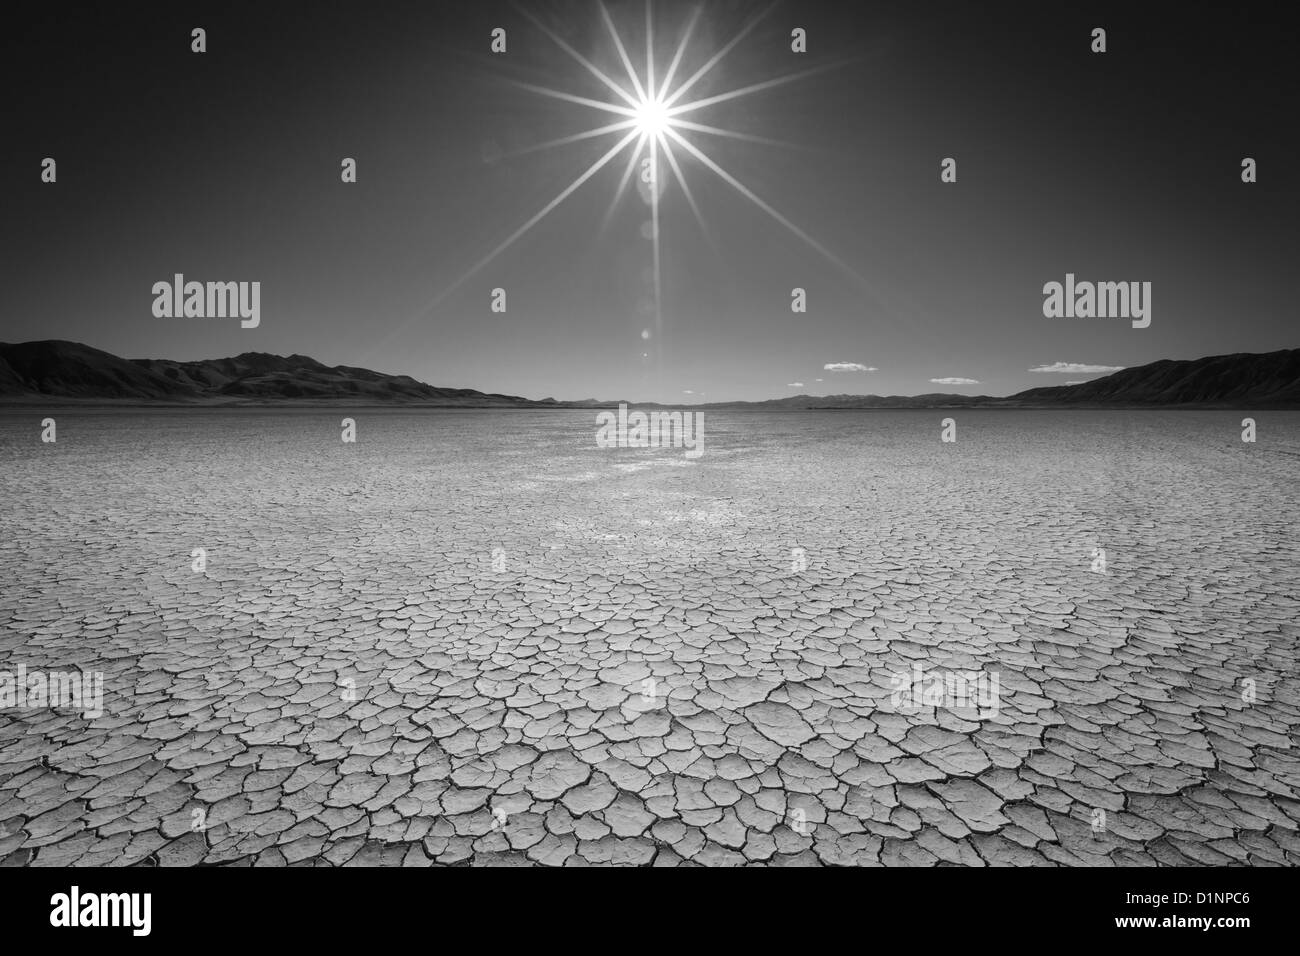 Black and white of the Black Rock Desert in Northern Nevada. Stock Photo